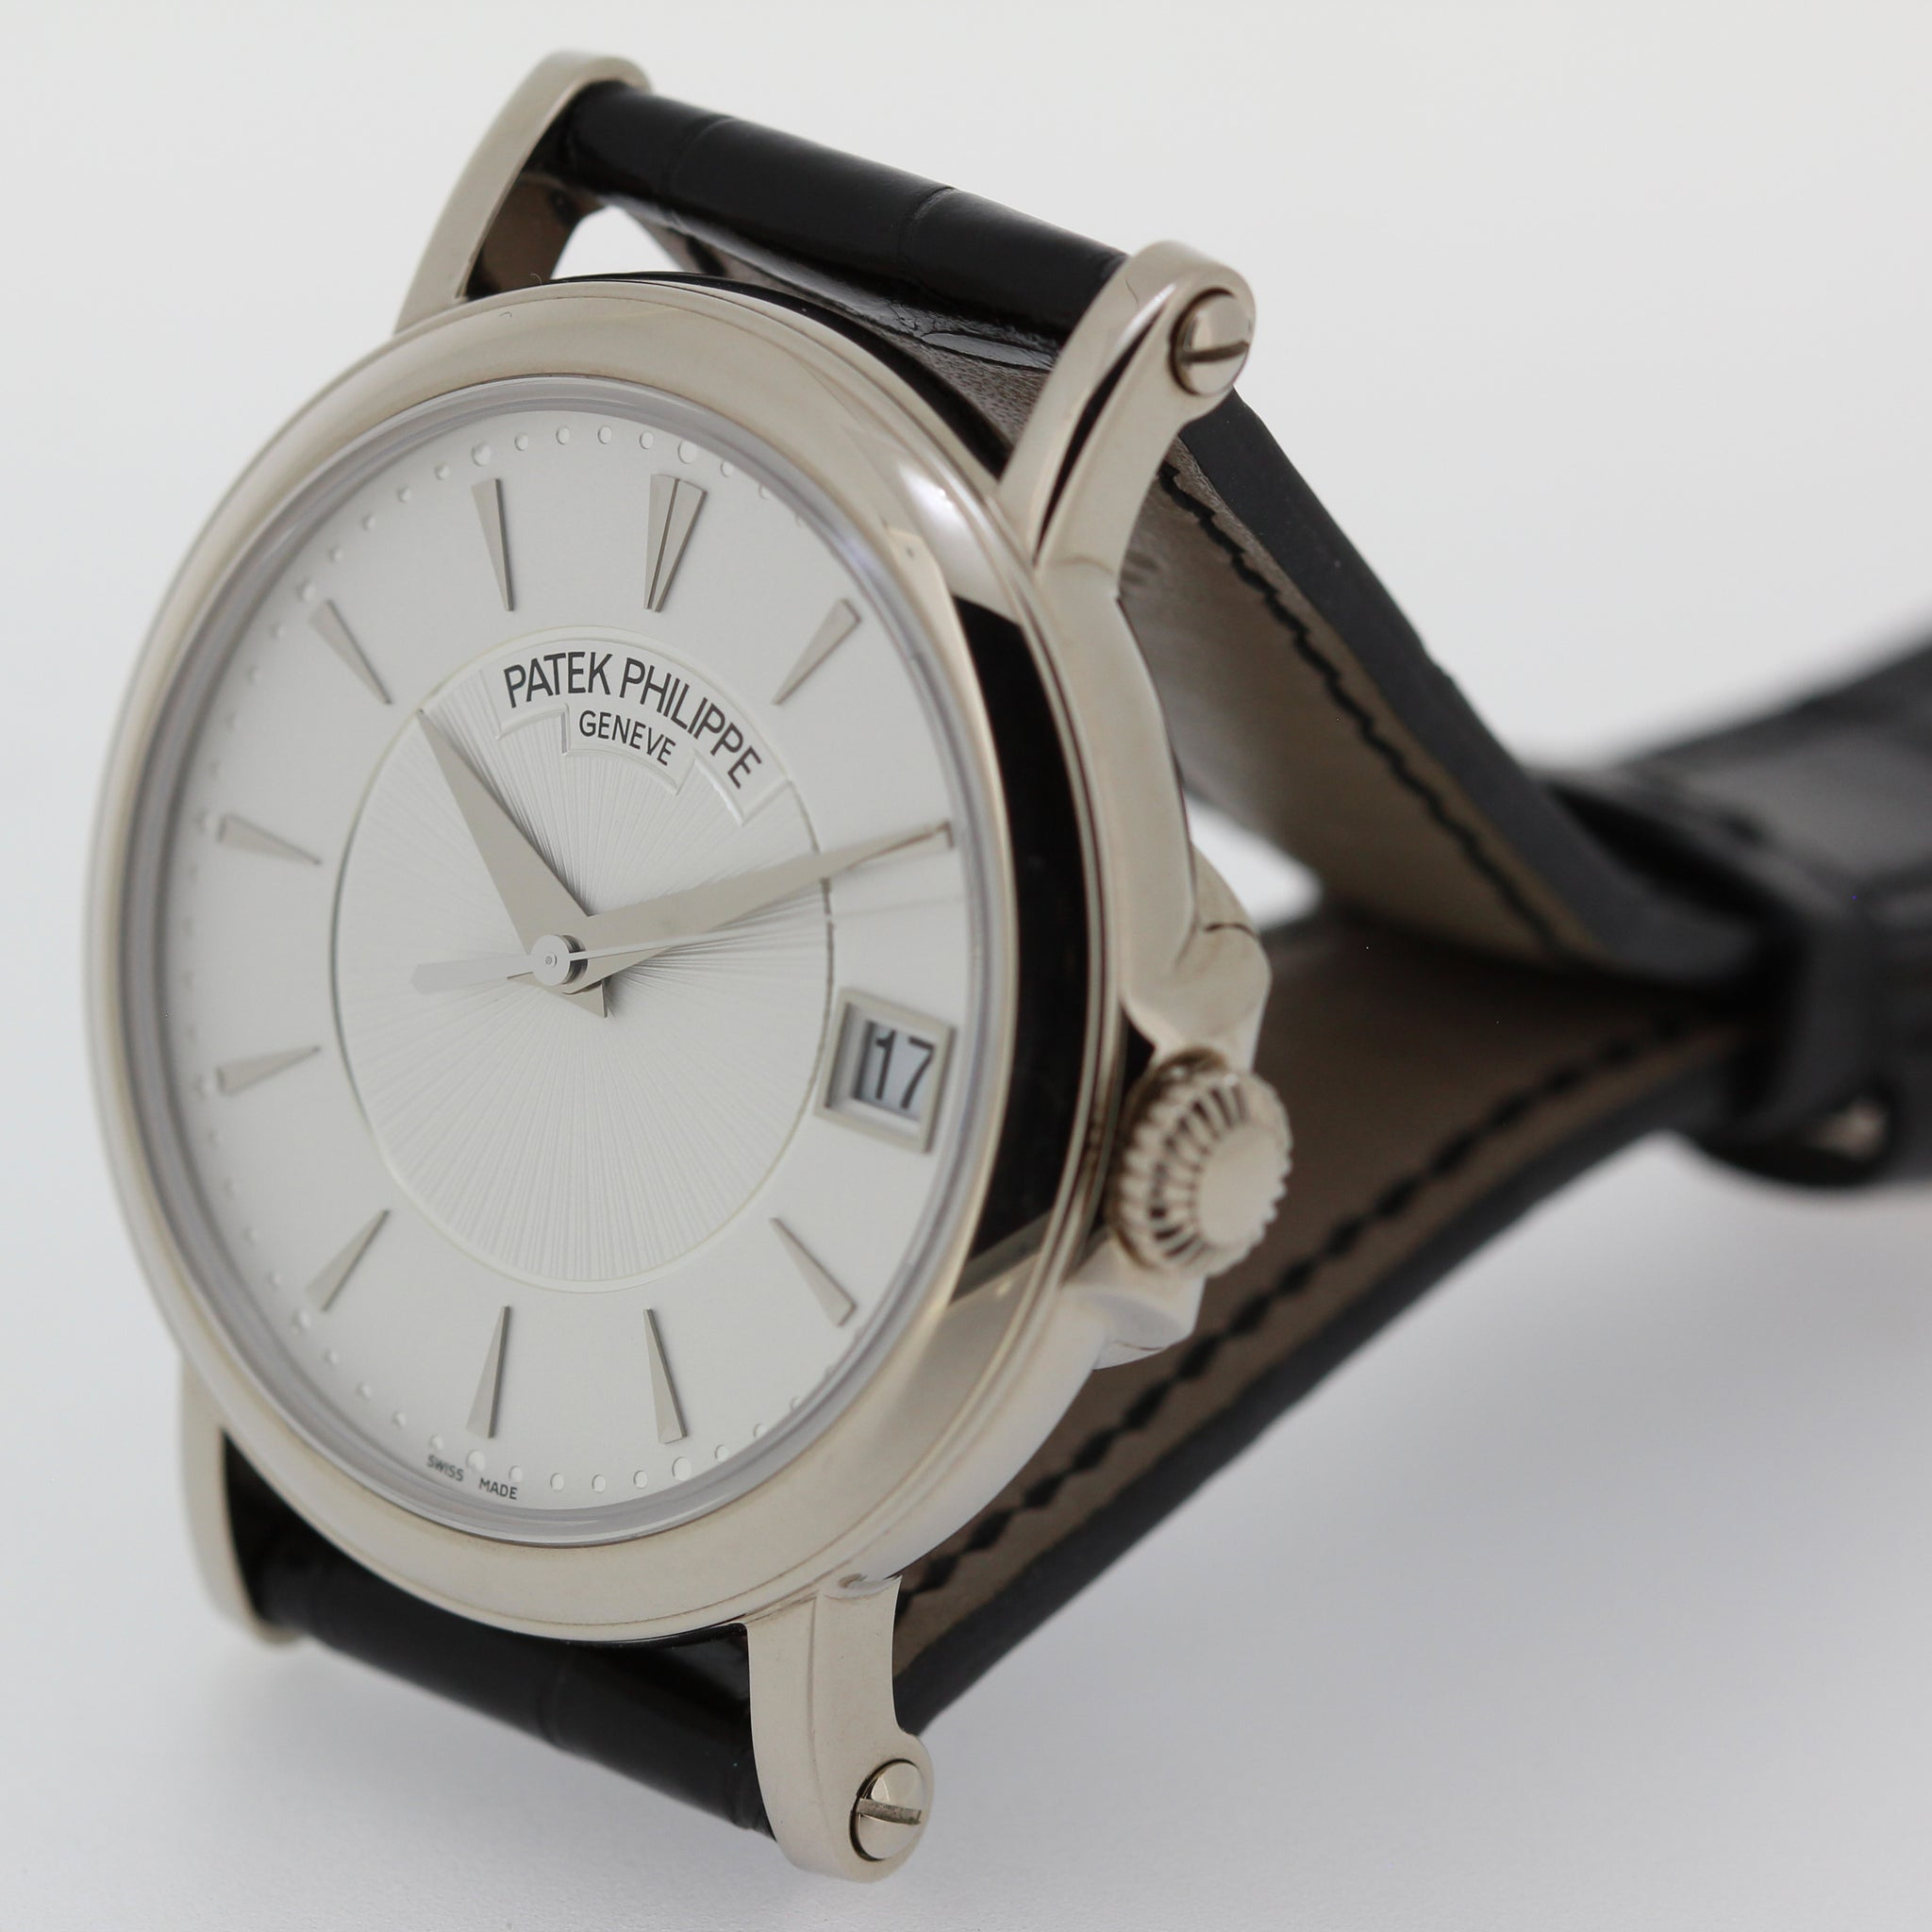 Patek Philippe 5153G-010 Calatrava Watch